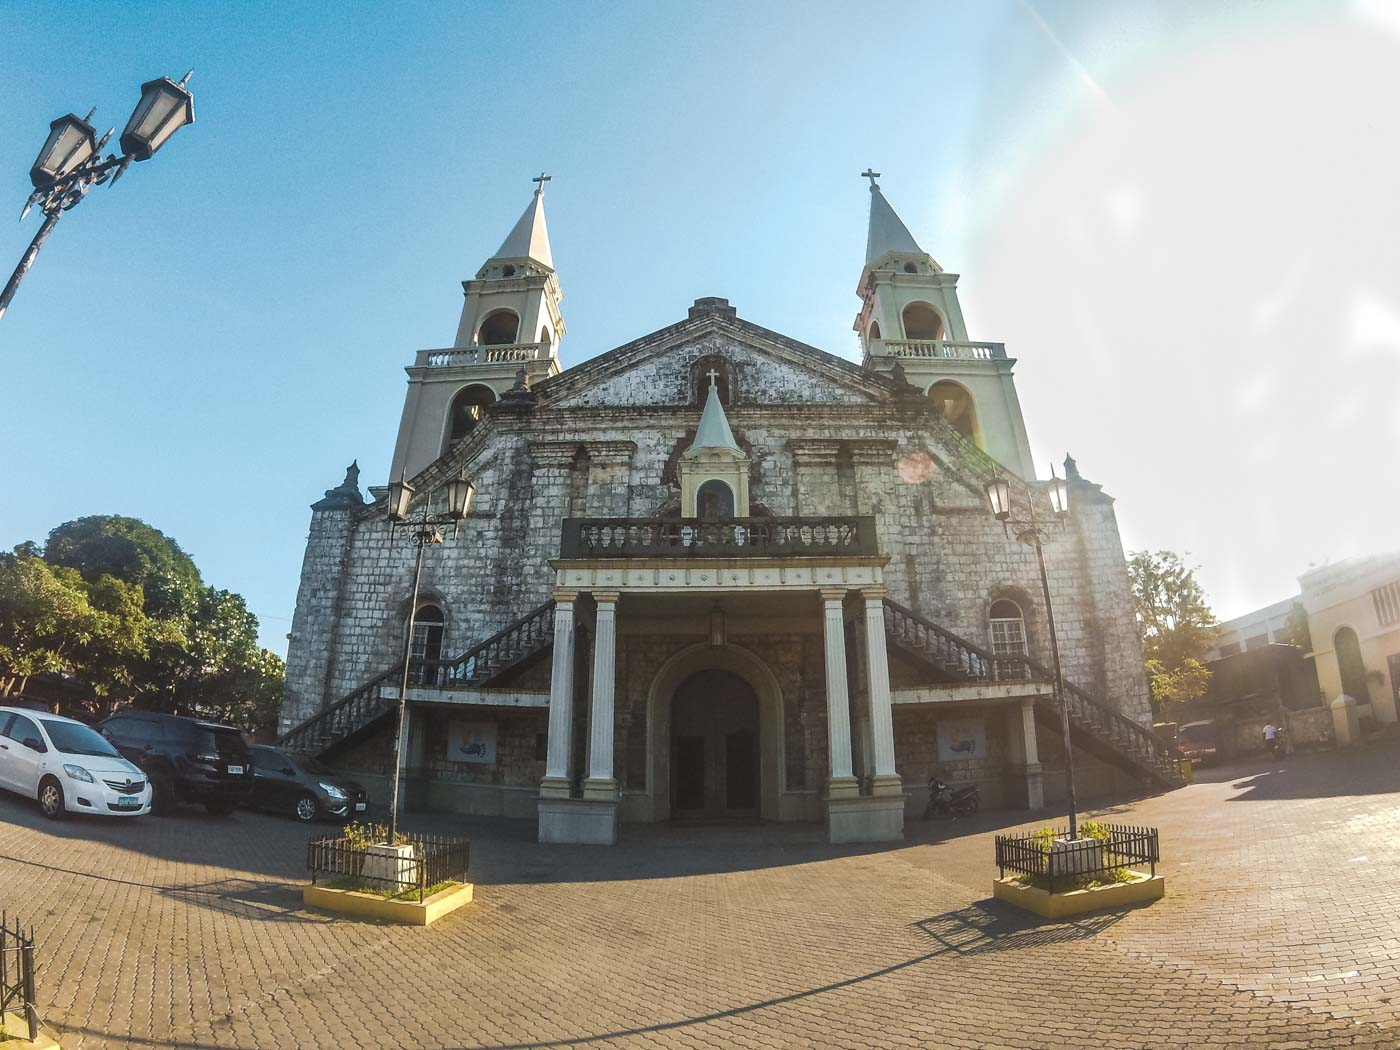 MARIAN. The only cathedral in the province, Jaro Cathedral is home to the miraculous image of Our Lady of the Candles which was canonically crowned by Saint John Paul II during his visit to Iloilo in 1981. Photo by Carl Don Berwin/Rappler